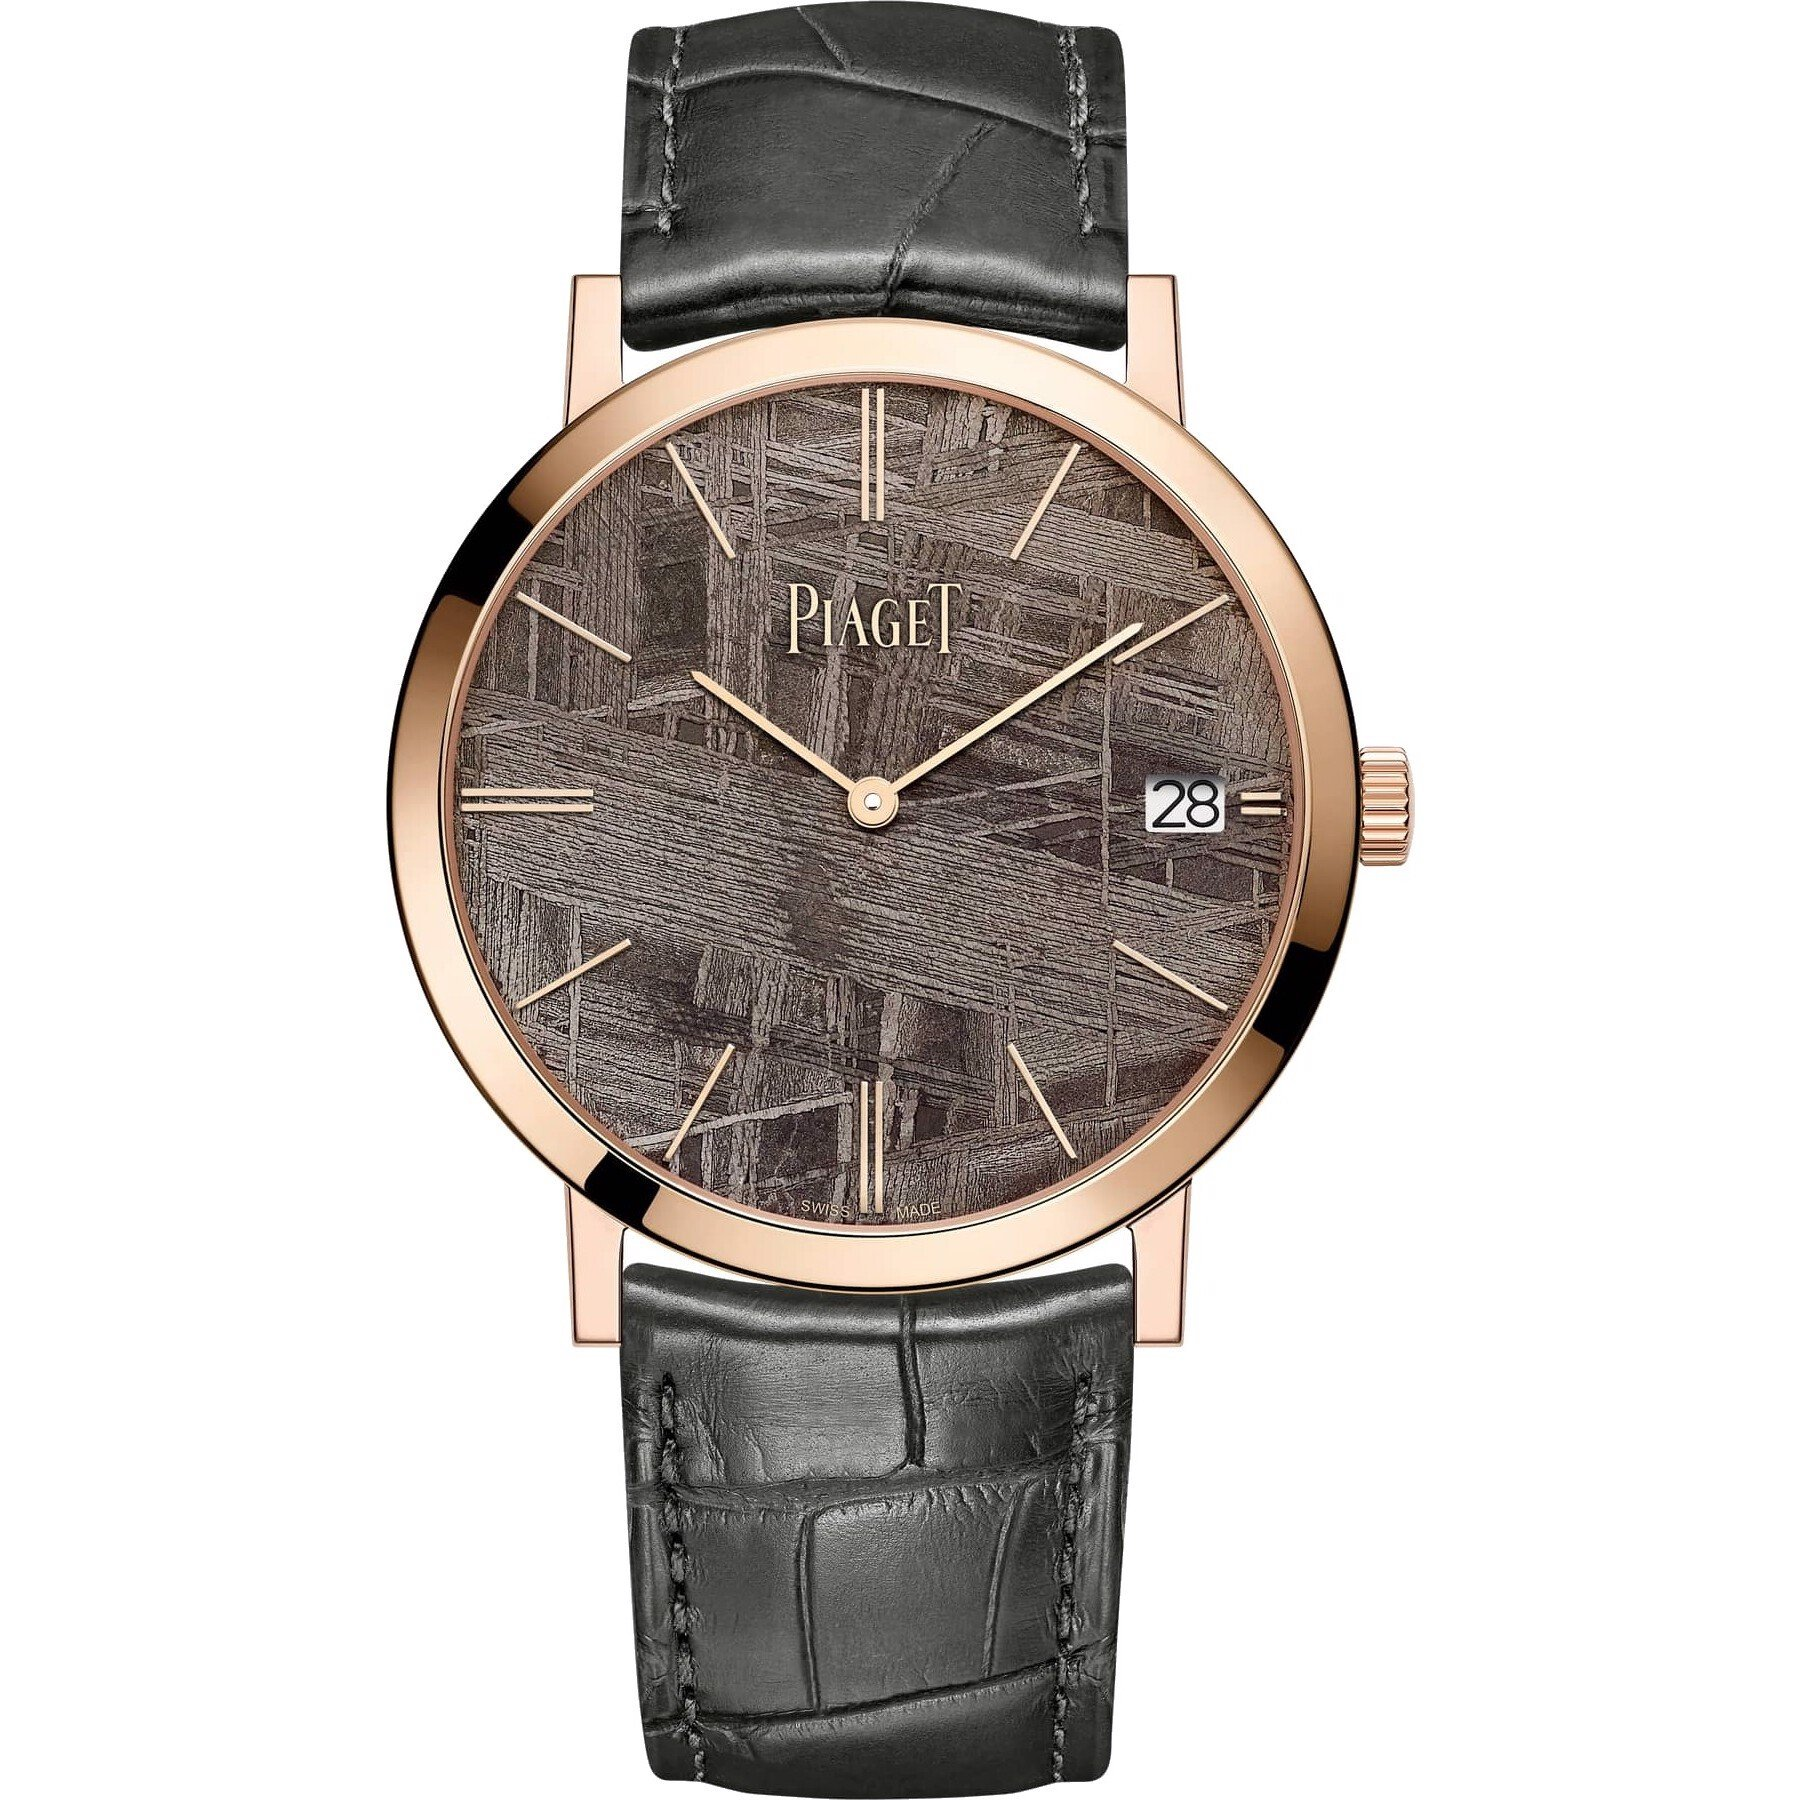 Piaget Altiplano G0A44051 Gray 18K Limited Watch 40